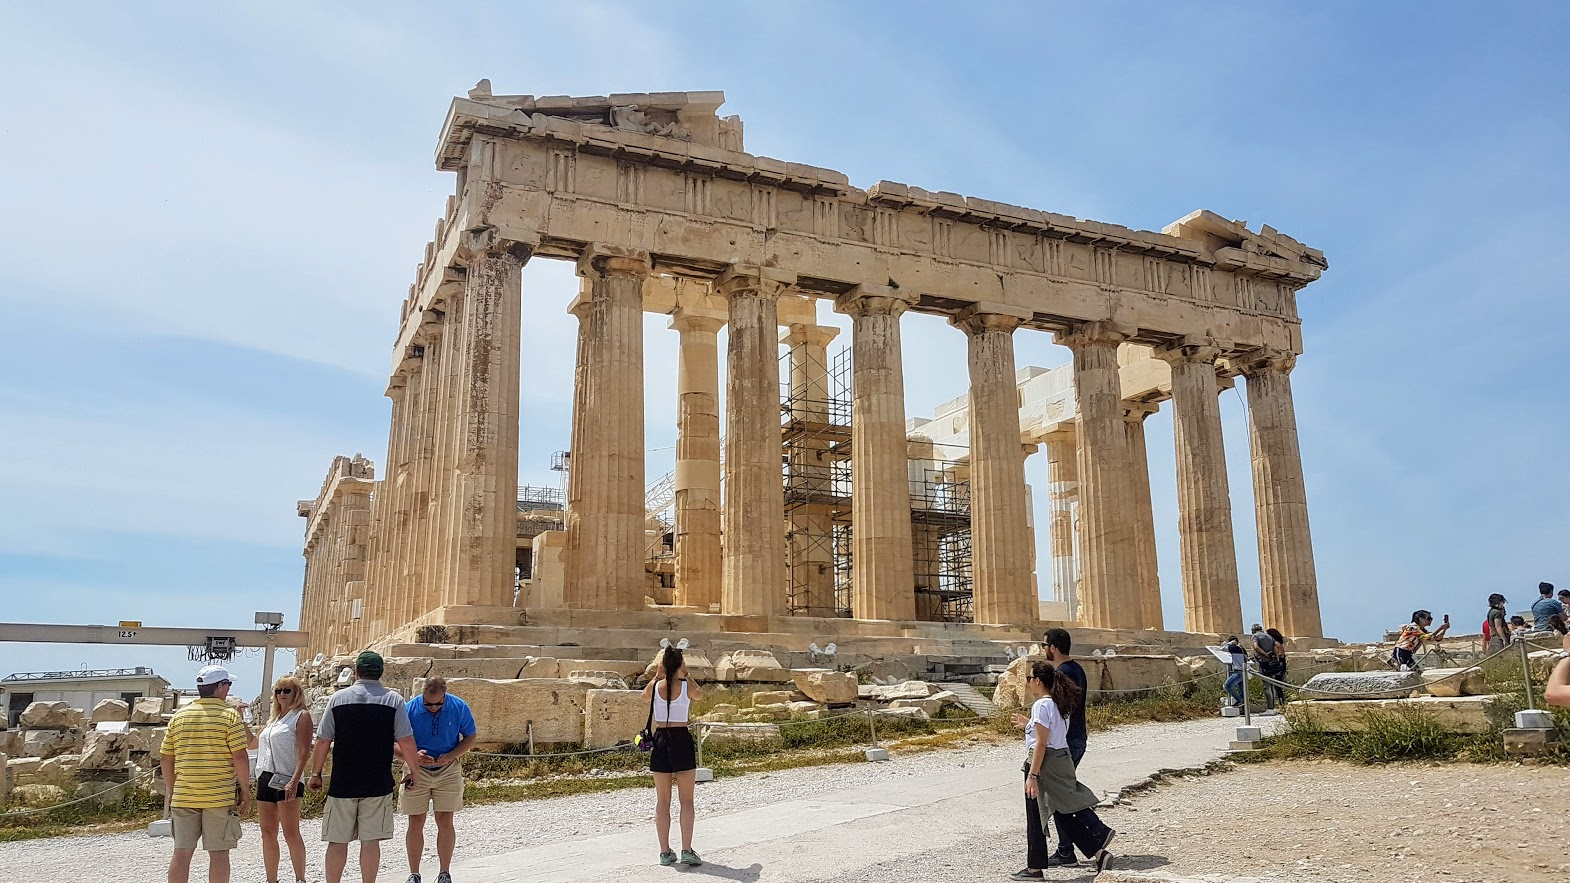 Free things to do in Athens - Walking around the Acropolis in Athens in the summer